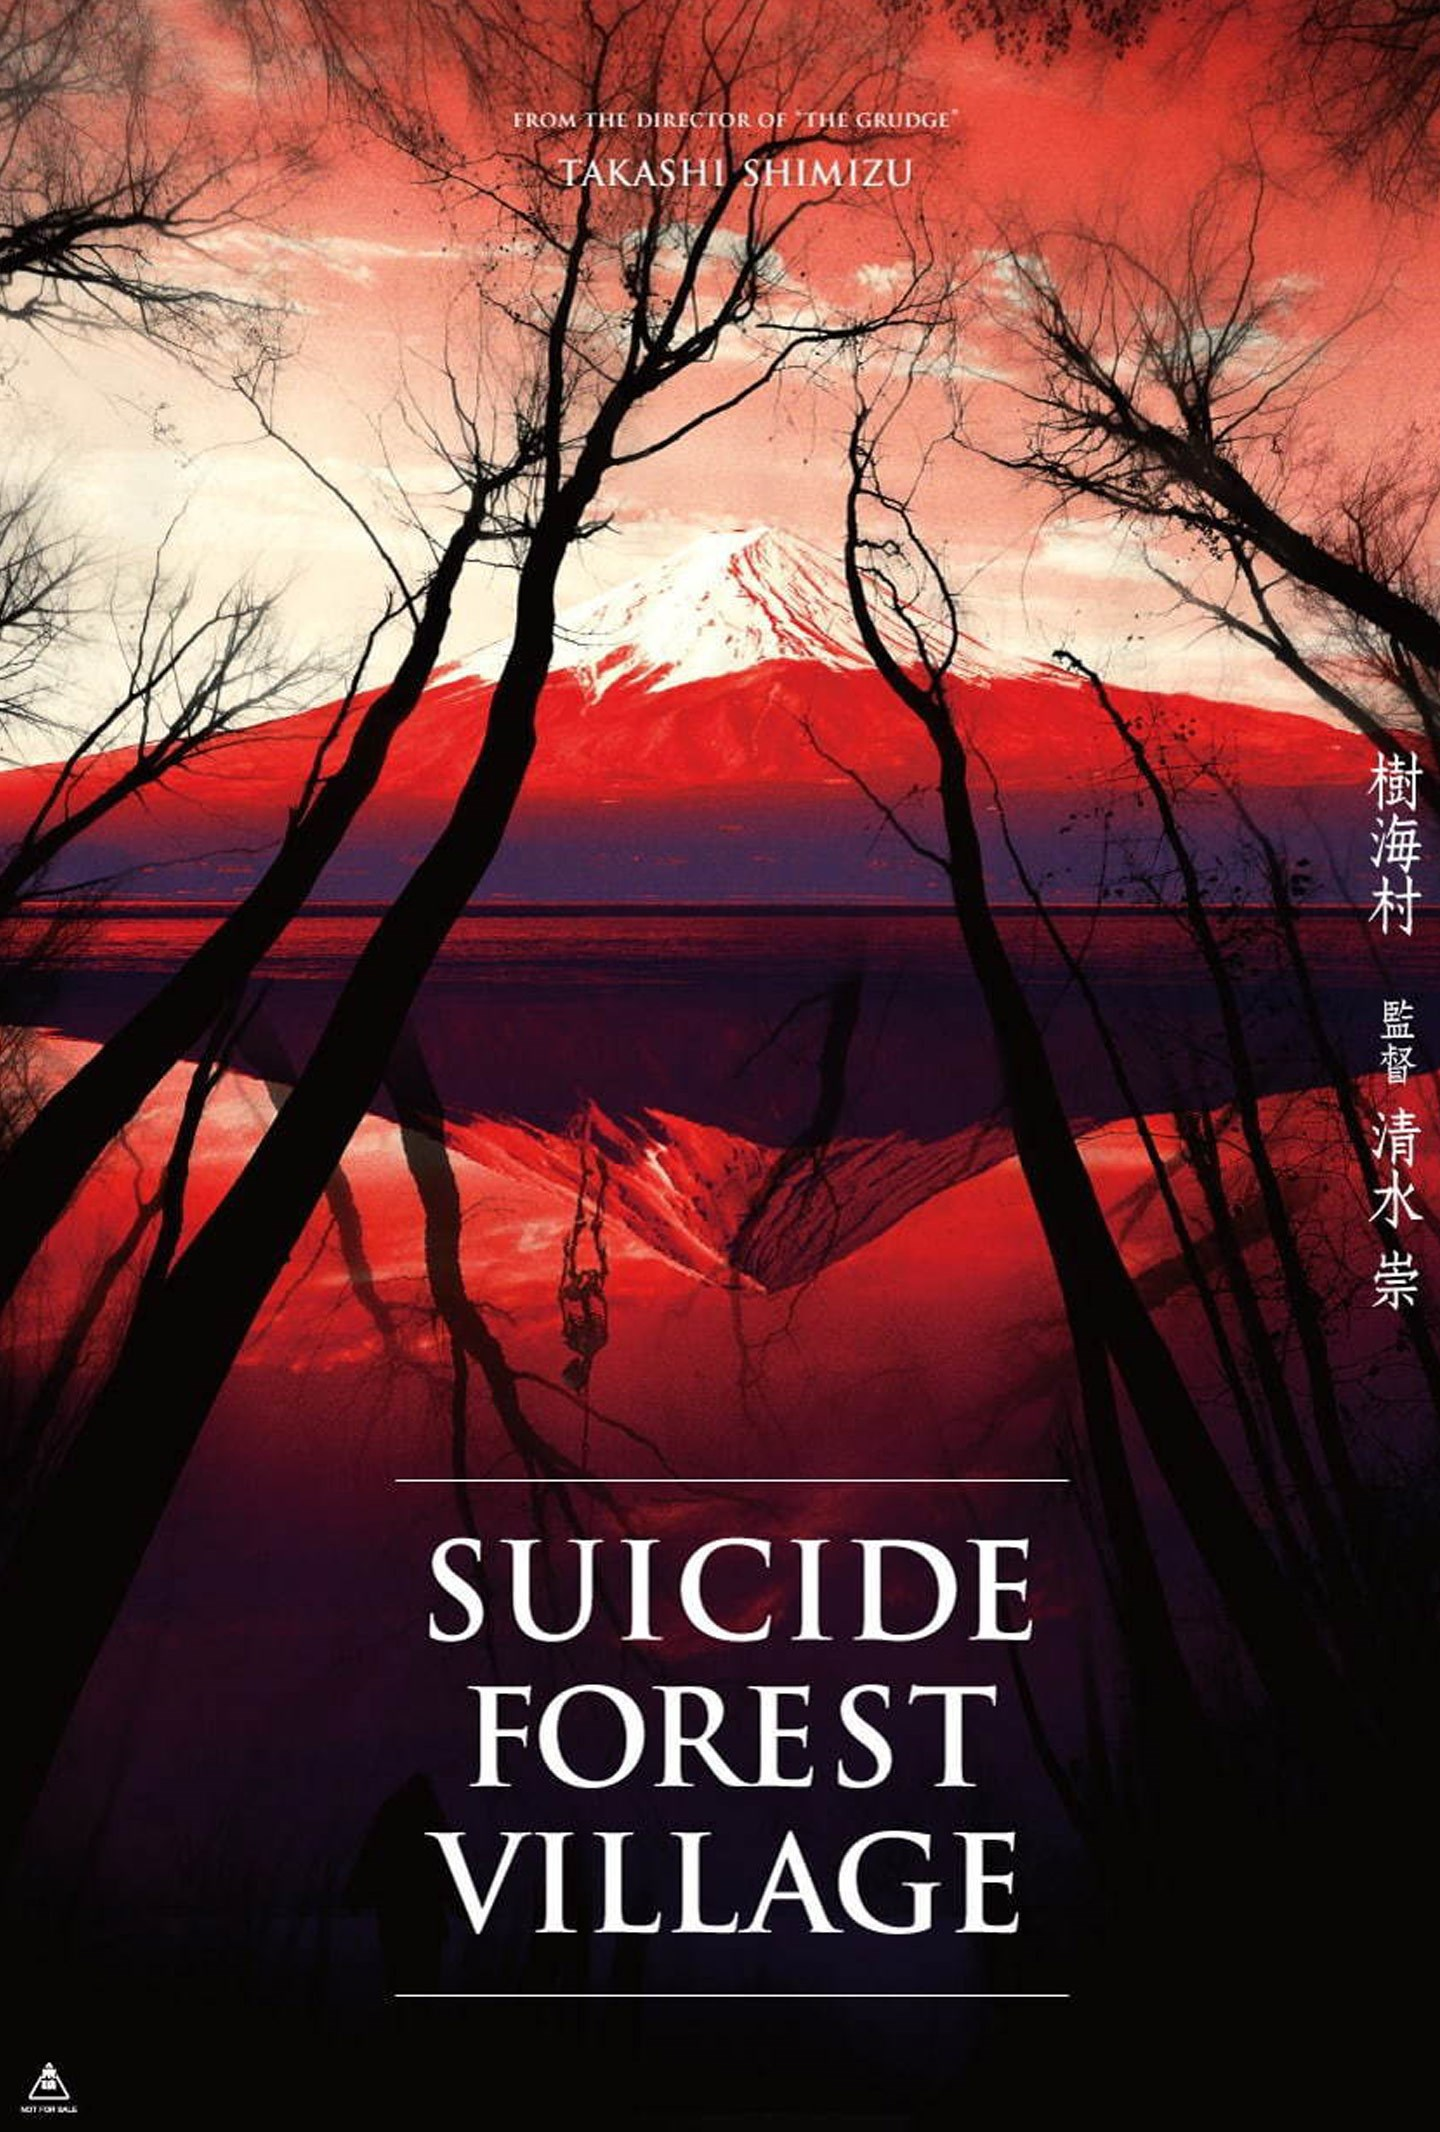 SUICIDE FOREST VILLAGE